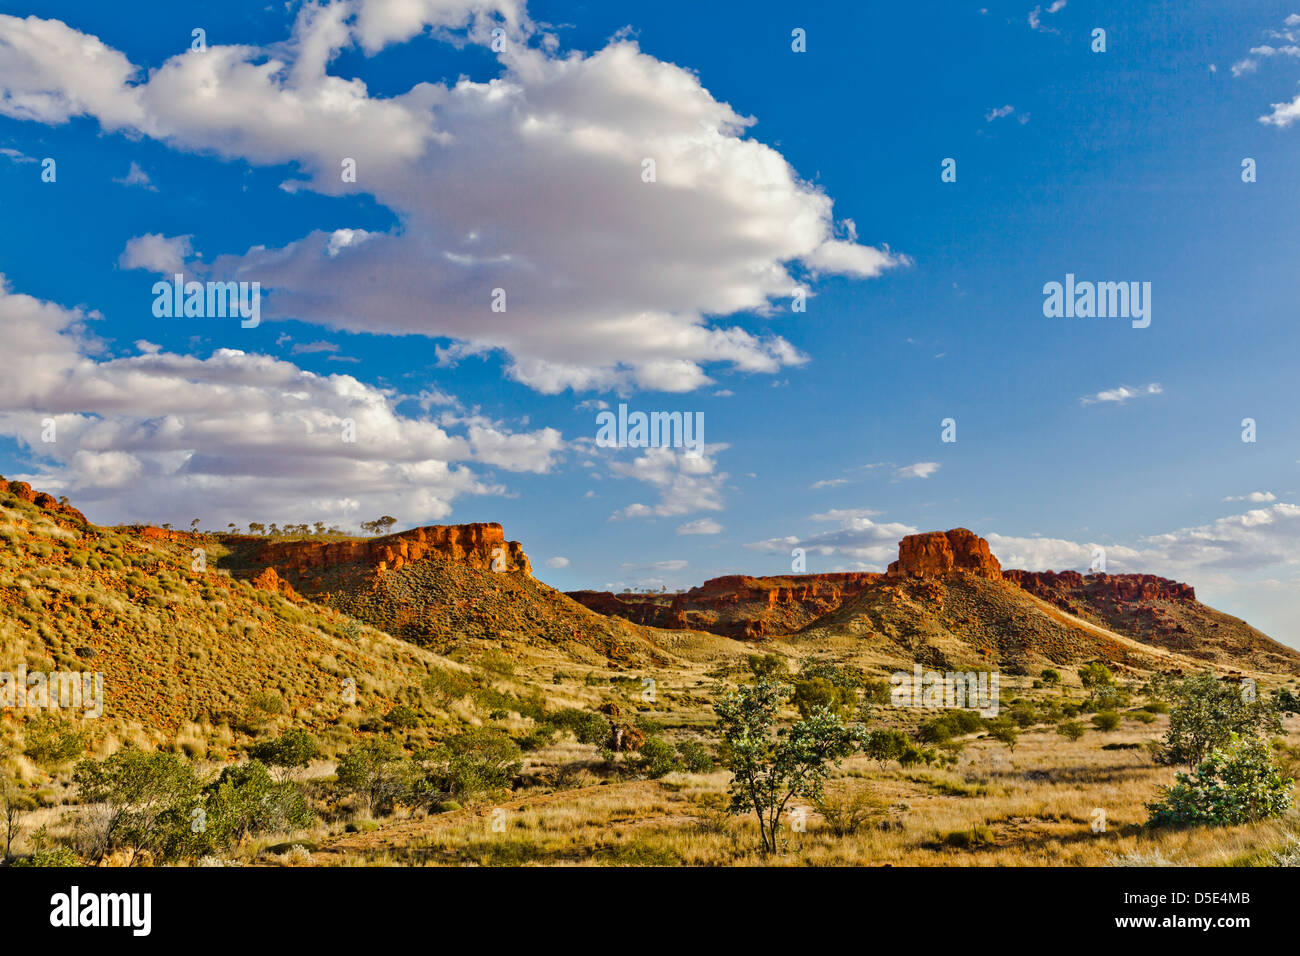 Australia, Western Australia, Kimberley, Great Northern Highway near Fitzroy Crossing - Stock Image